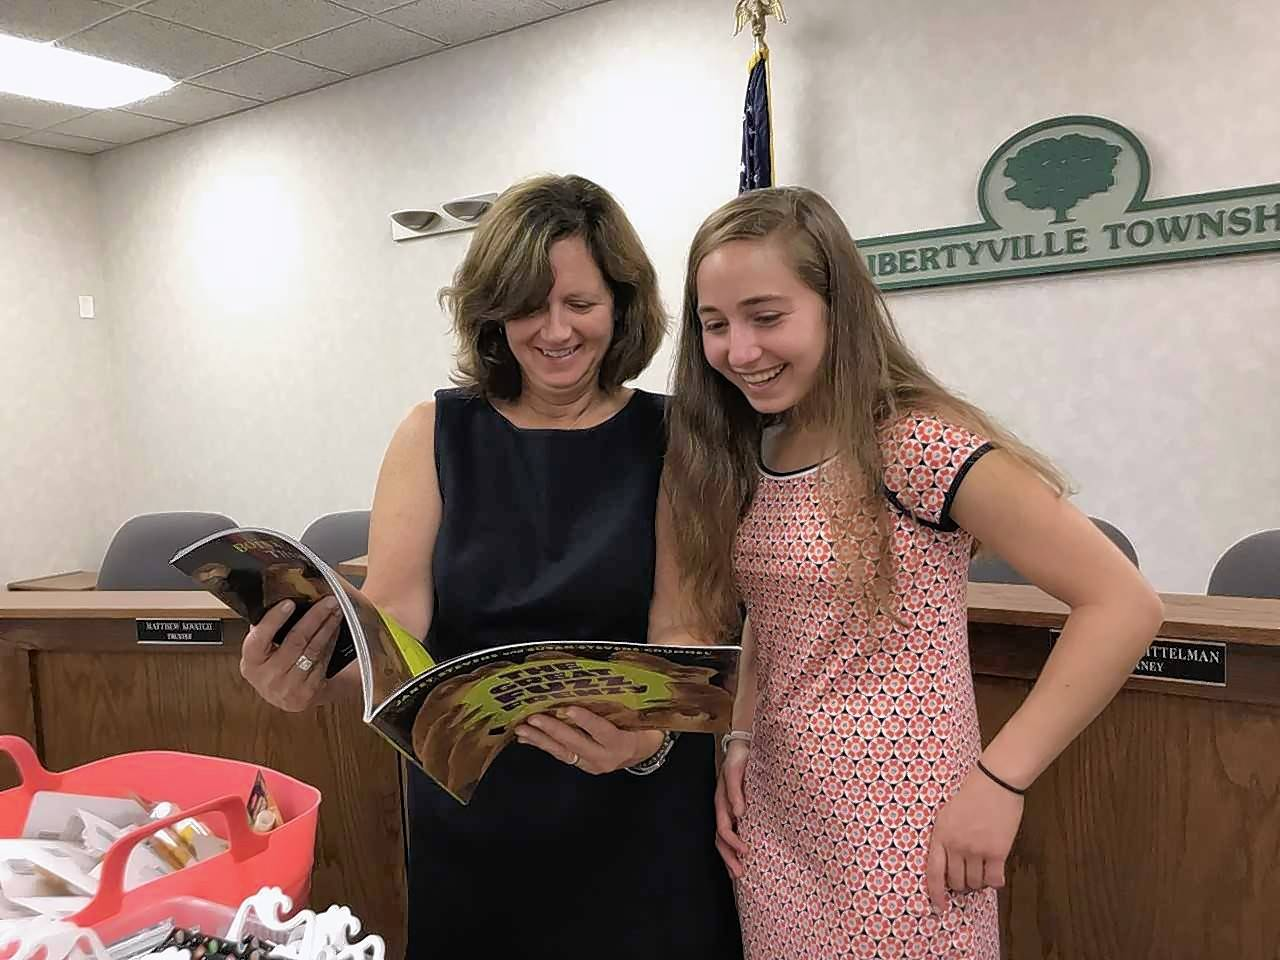 Sofia Coury, 15, and her Girl Scout Gold Award adviser Libertyville Township Supervisor Kathleen O'Connor look over a book that will be included in a Reading Gear Literacy Kit.